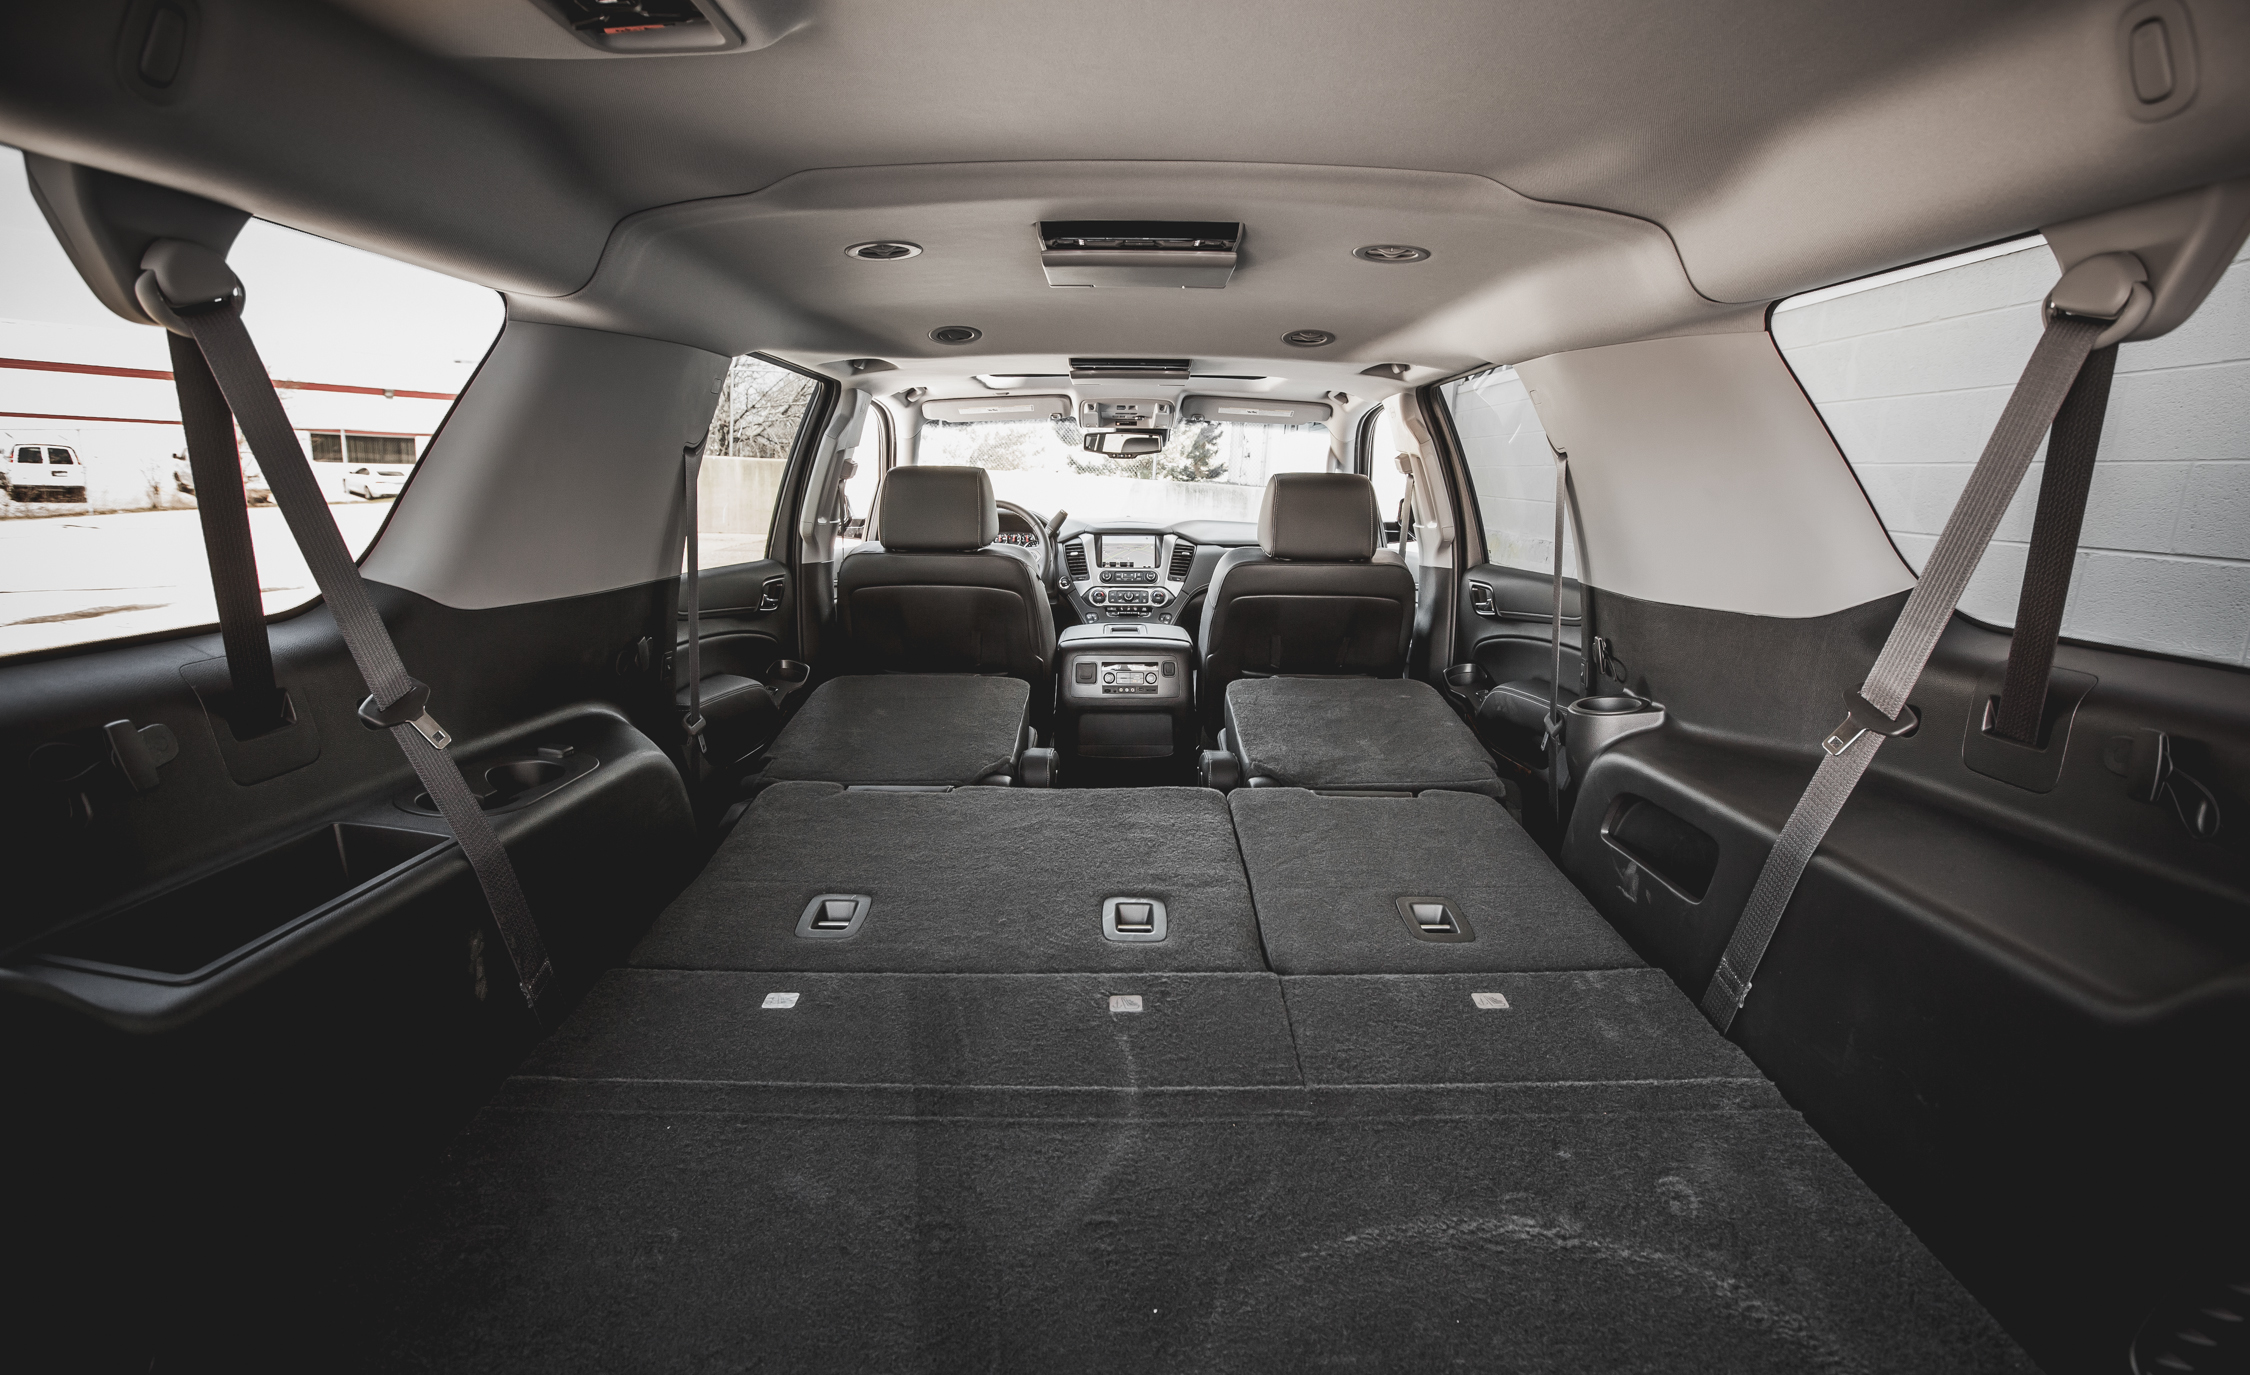 2015 Chevrolet Suburban LTZ Cargo Area (Photo 13 of 33)